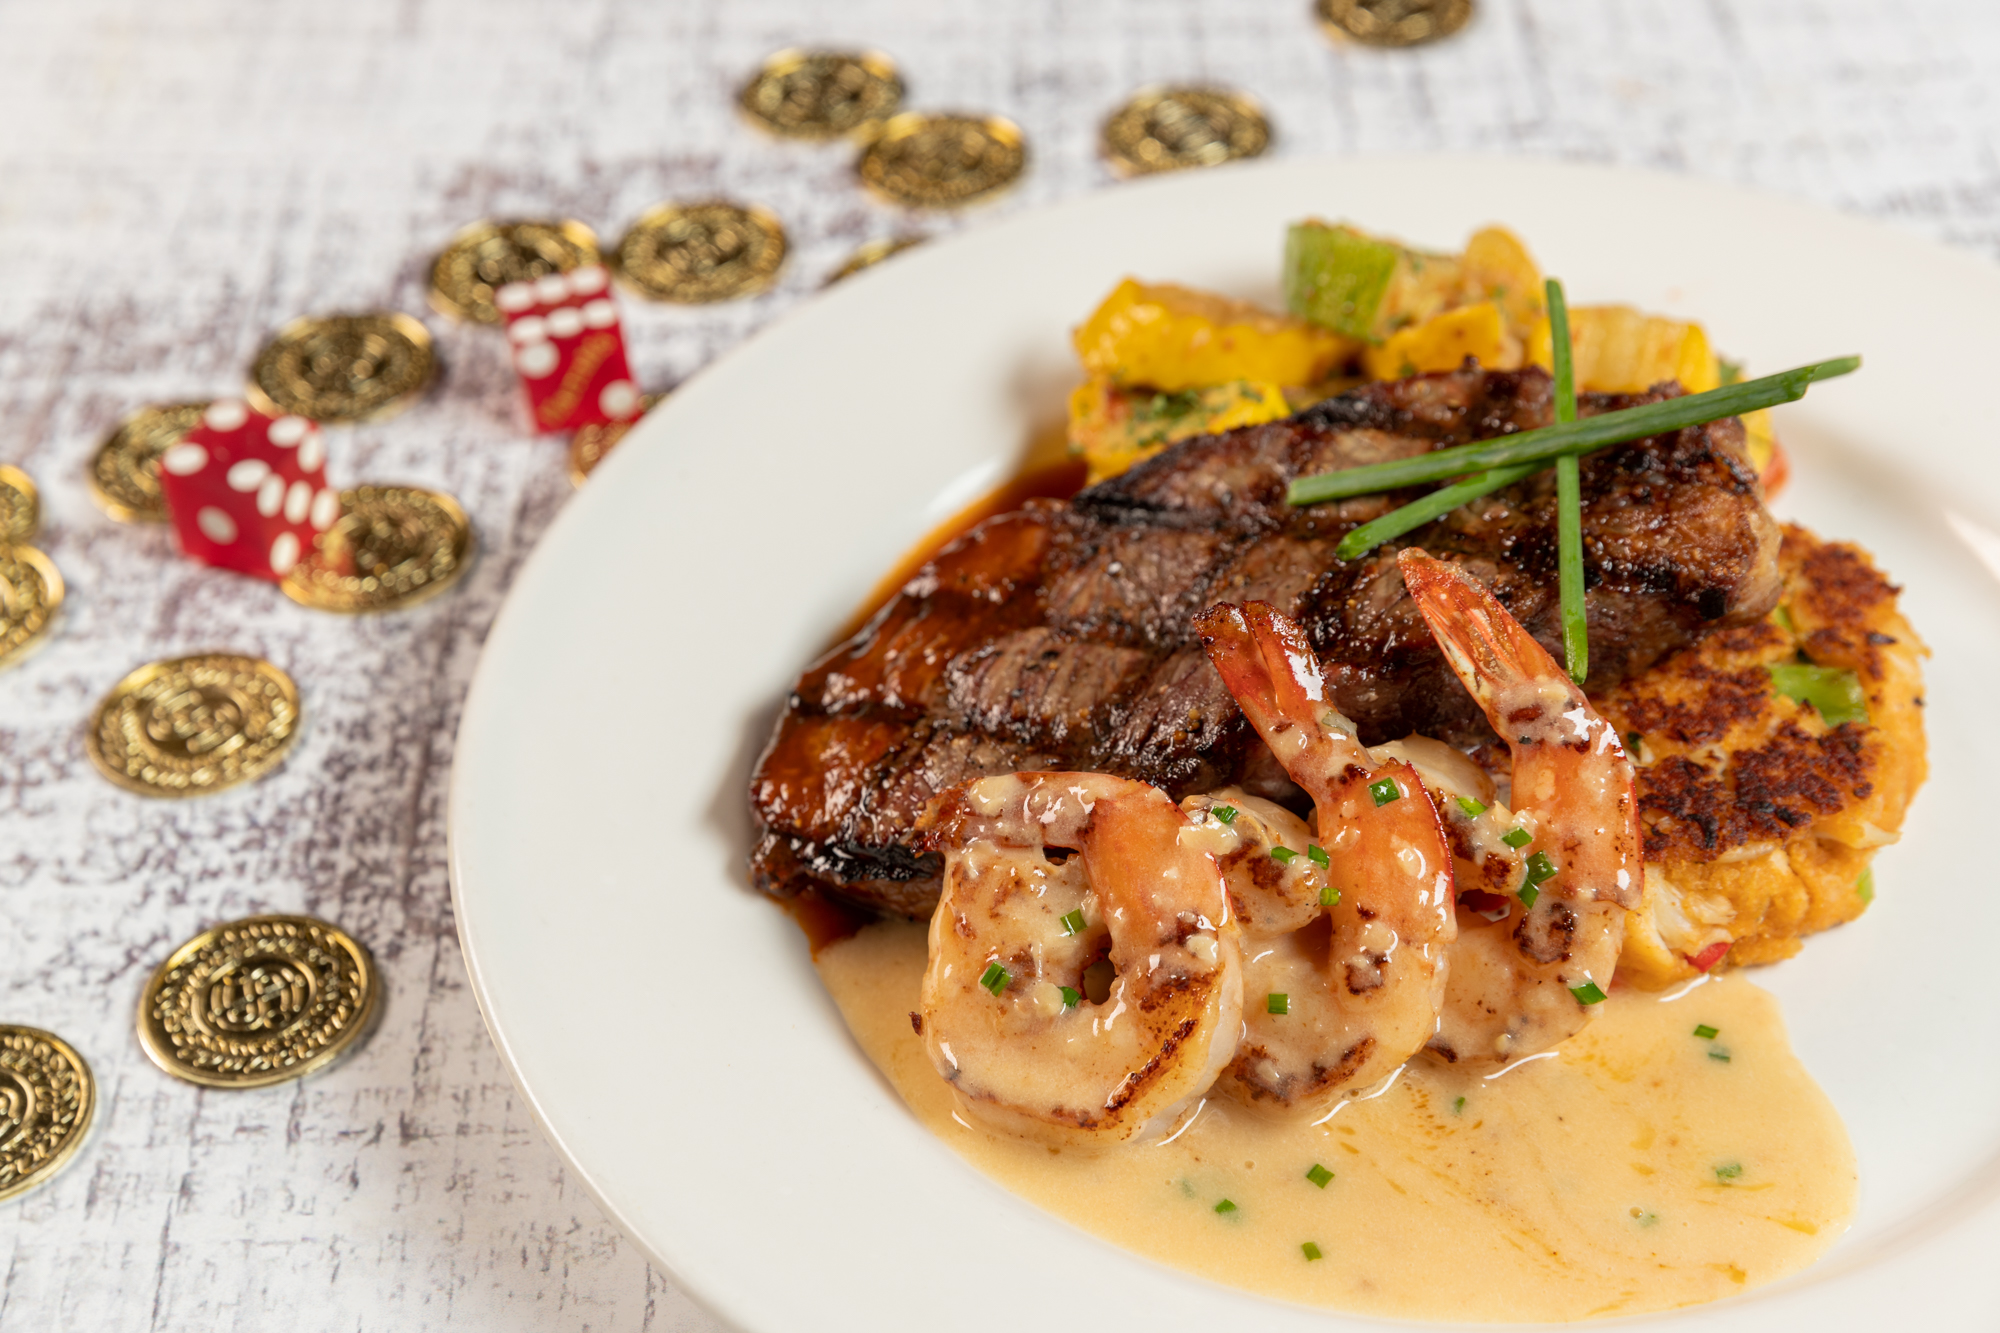 Surf n' Turf madness at The Cafe